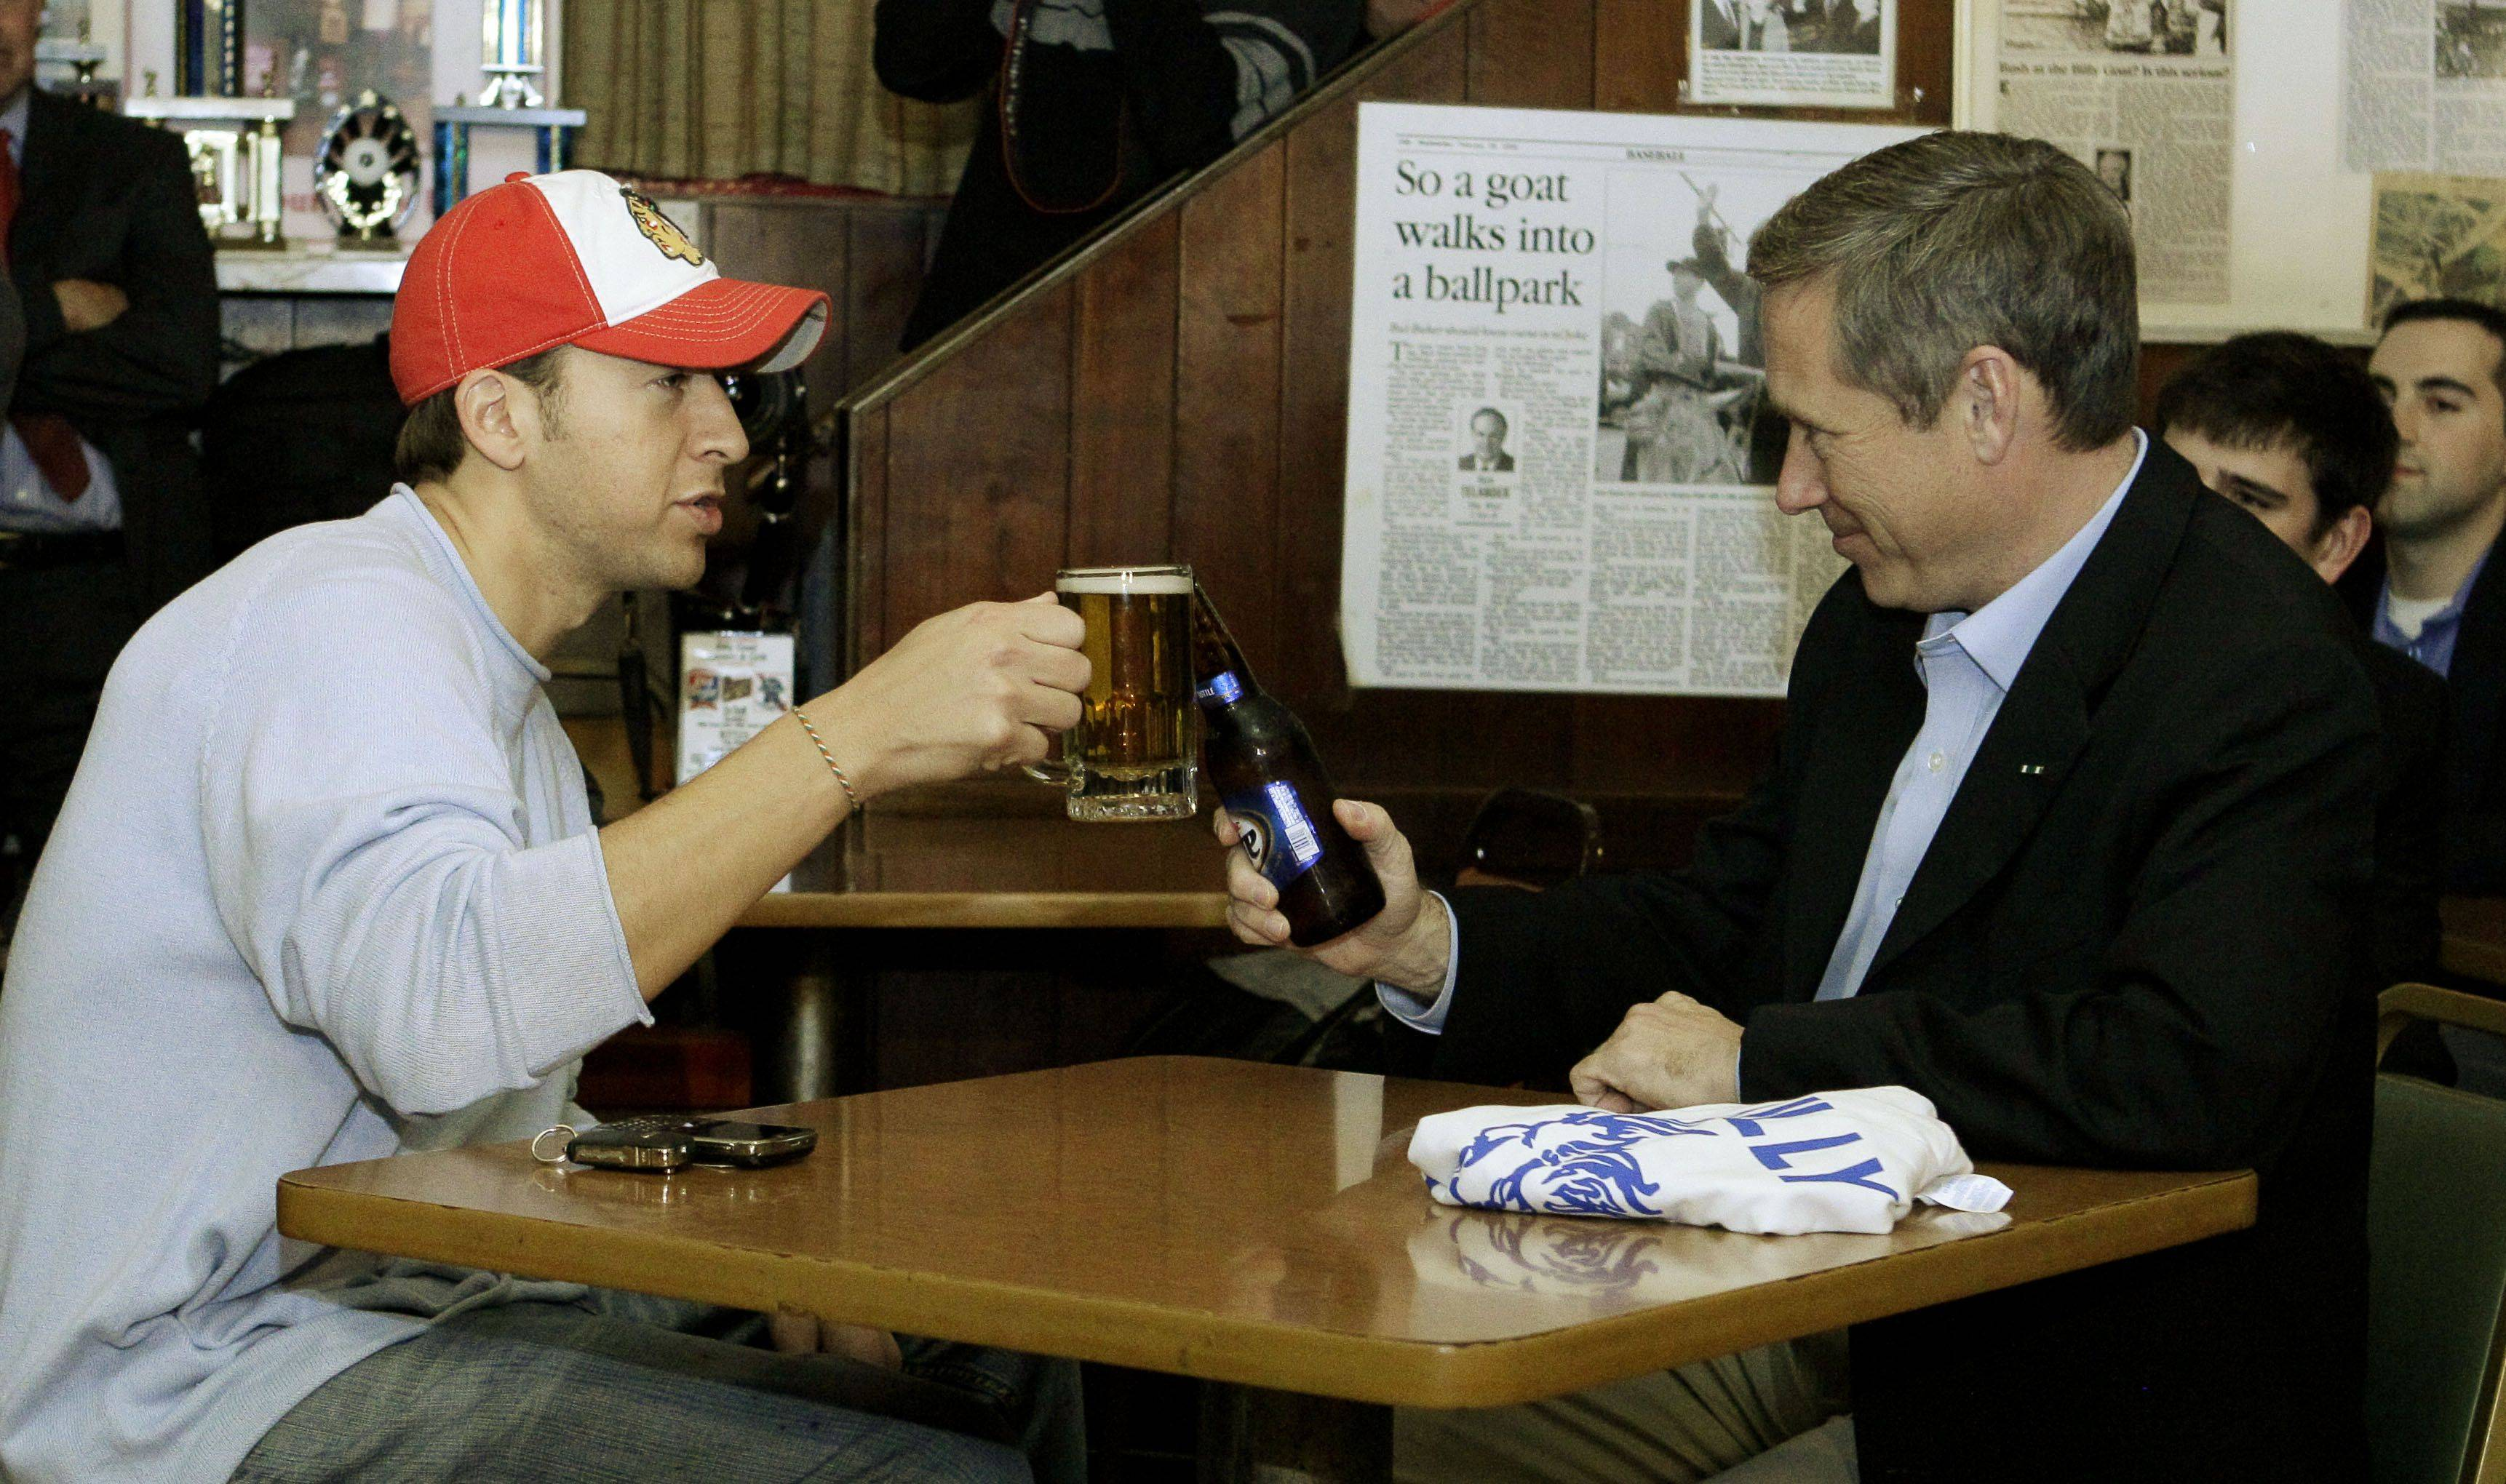 U.S. Senator-elect, Republican Mark Kirk, right, and his Democratic opponent Alexi Giannoulias toast while having a beer at the famed Billy Goat Tavern .